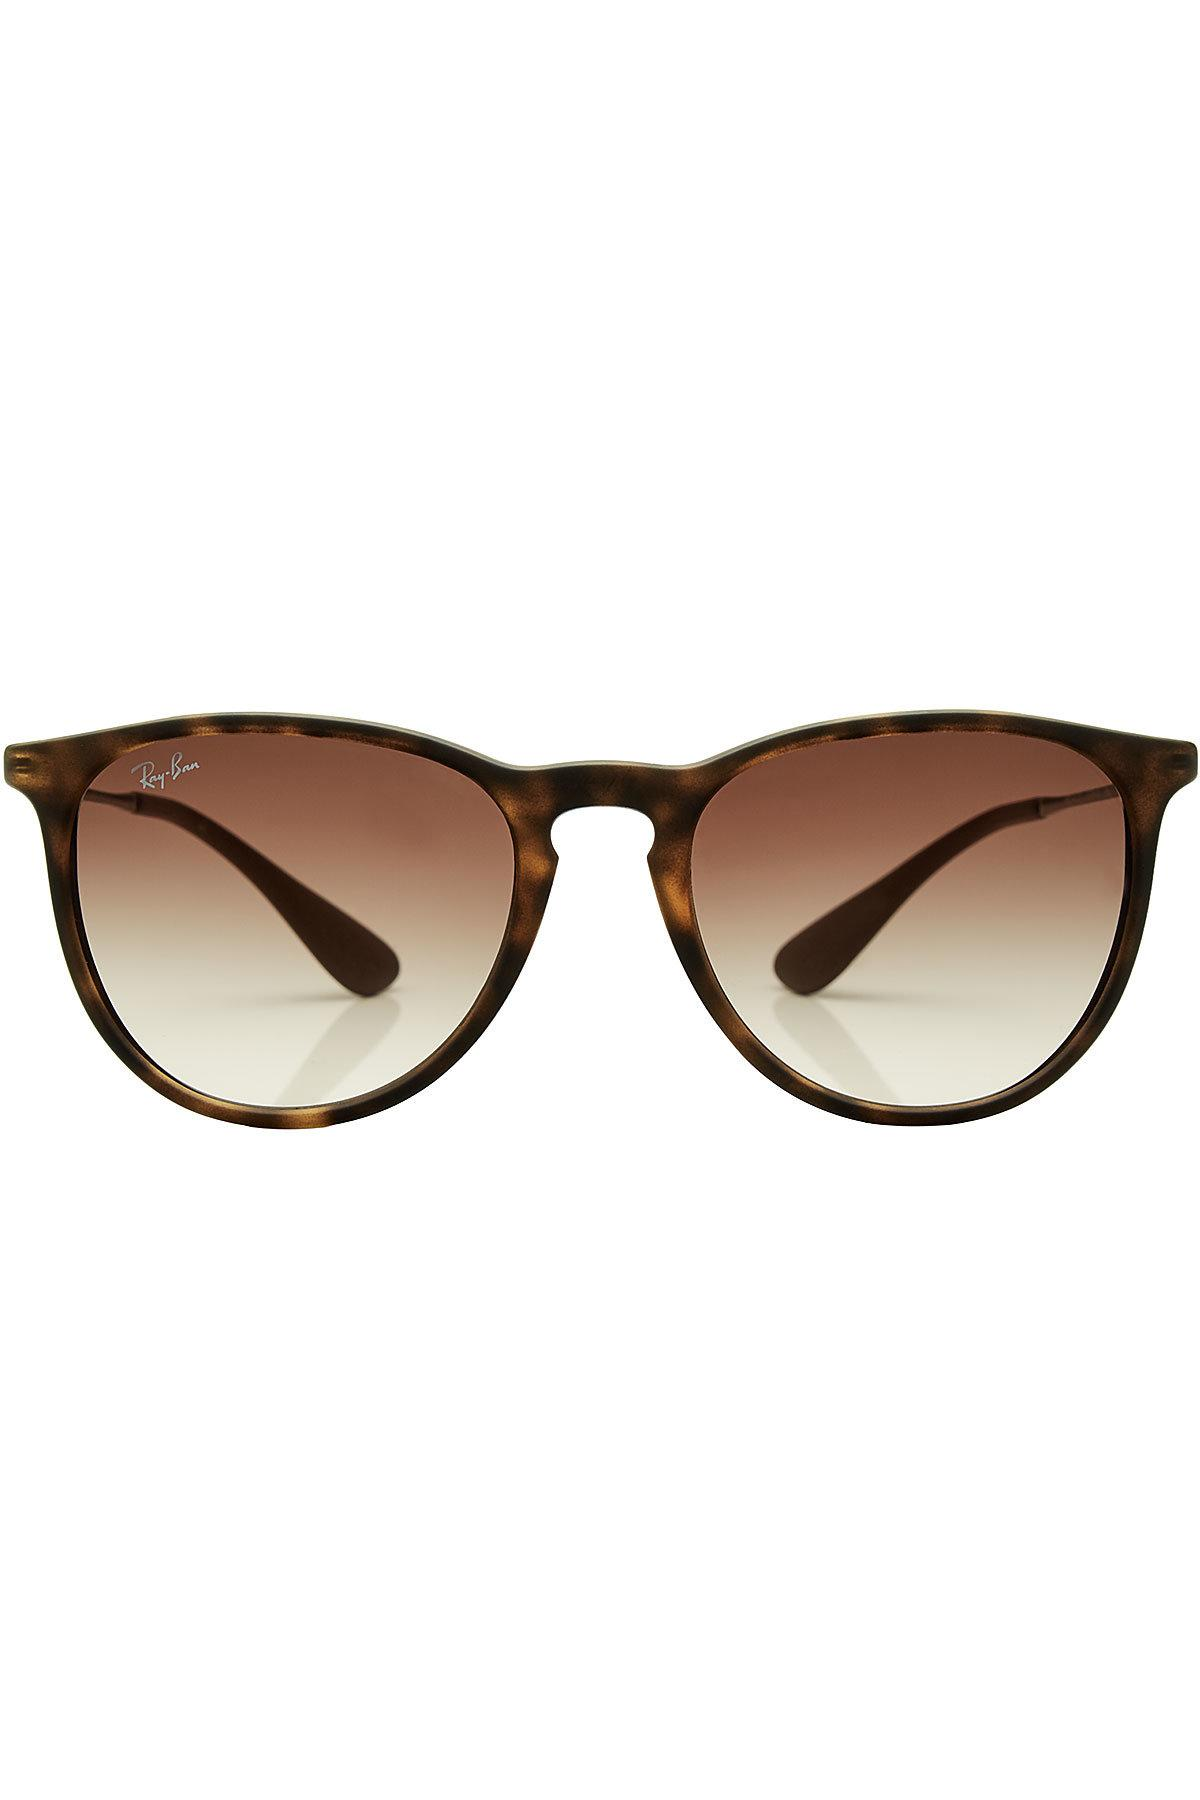 Ray Ban Rb4171 Sunglasses In Brown